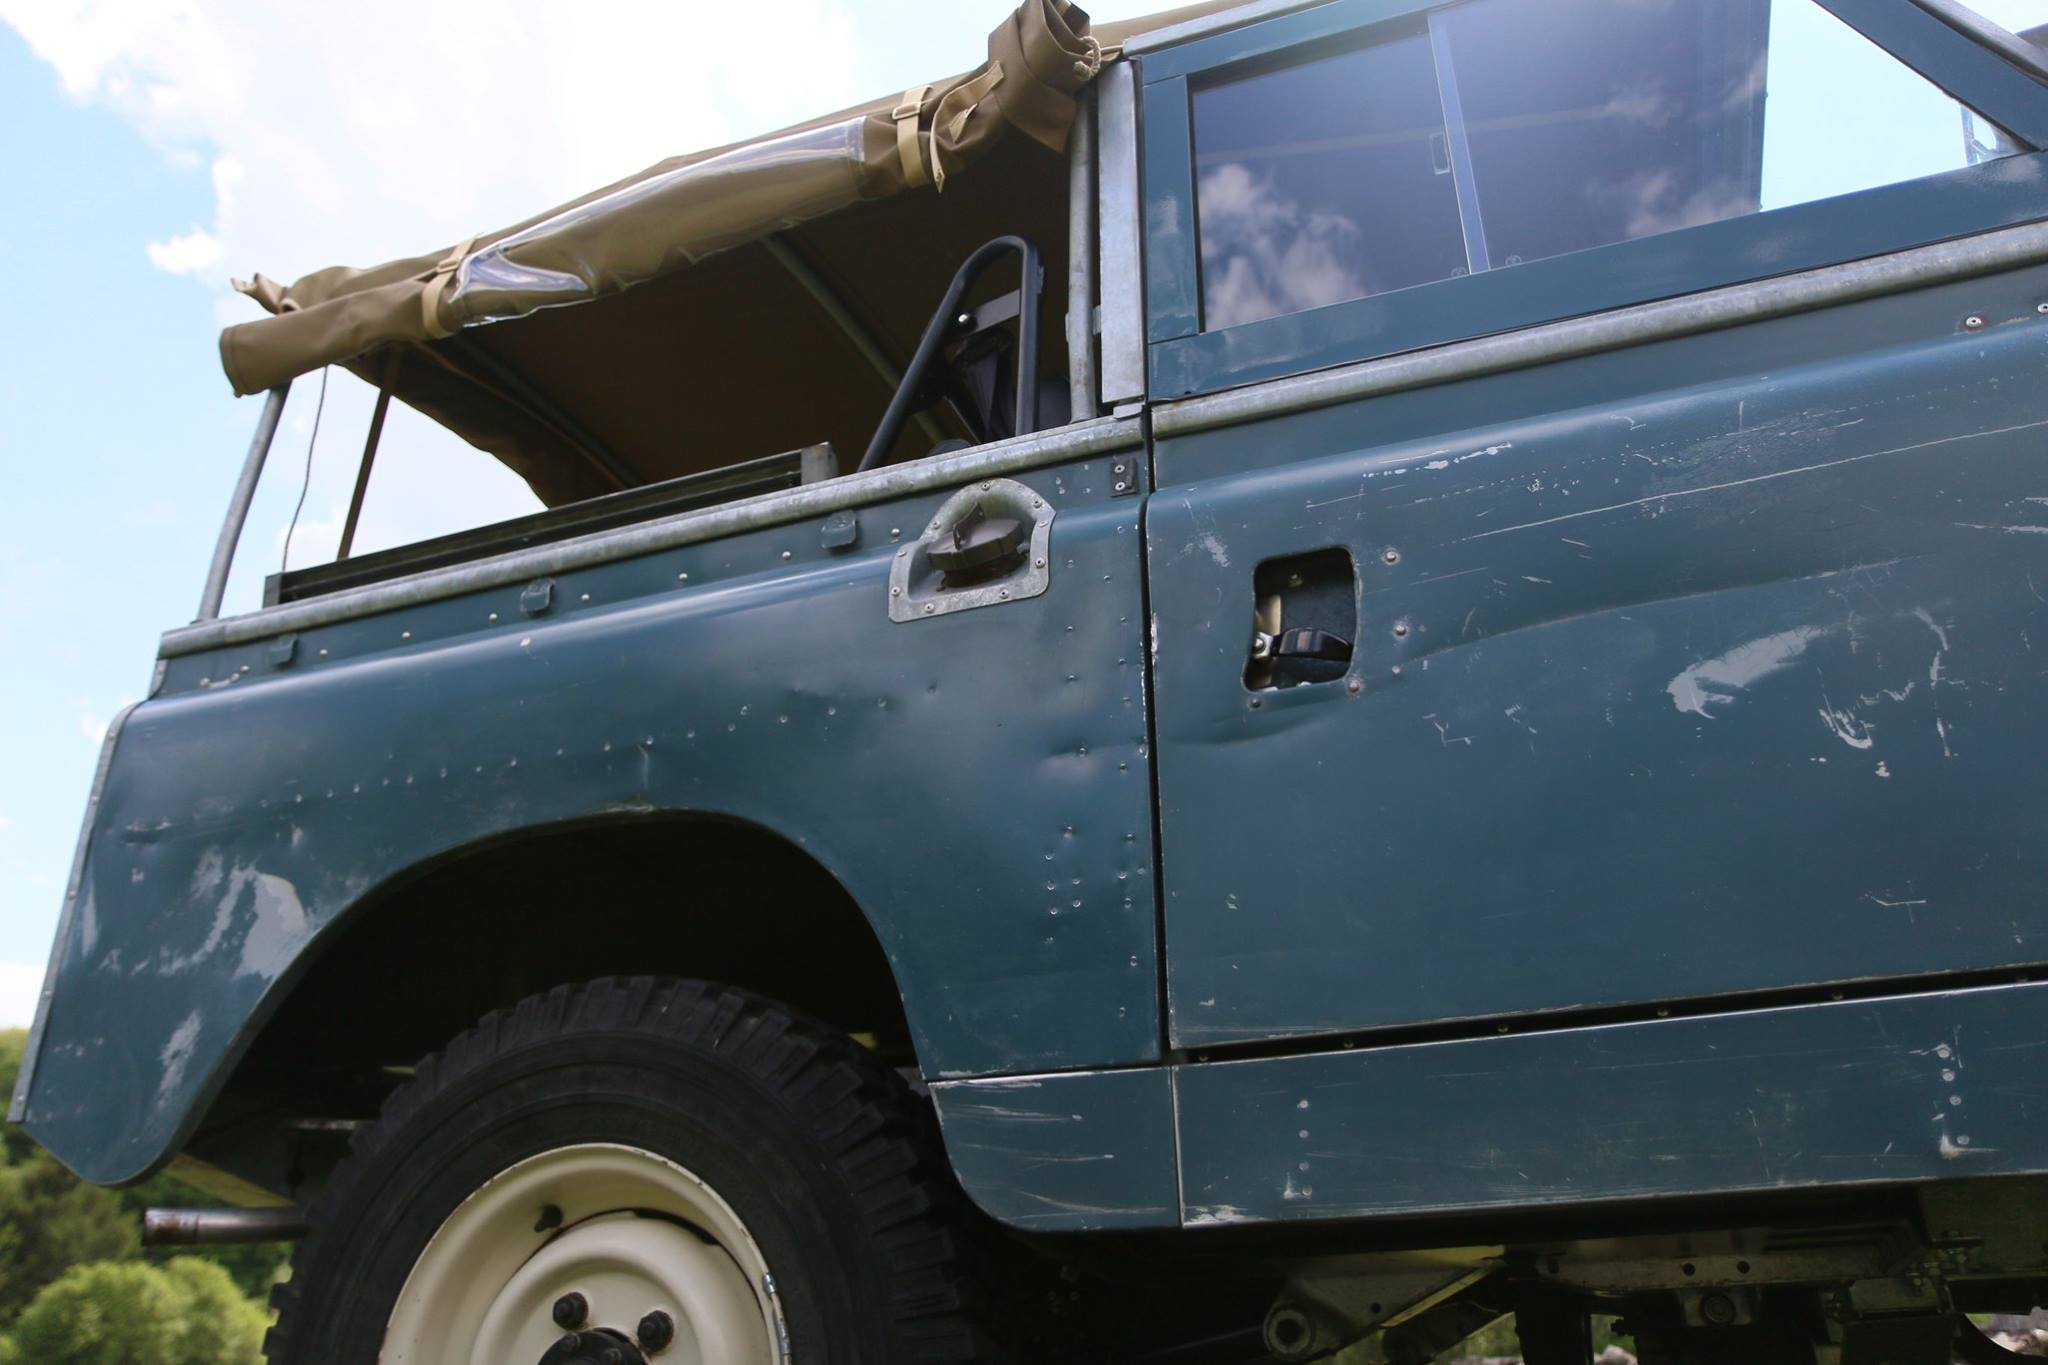 Side profile showing off authentic patina on 62 Land Rover